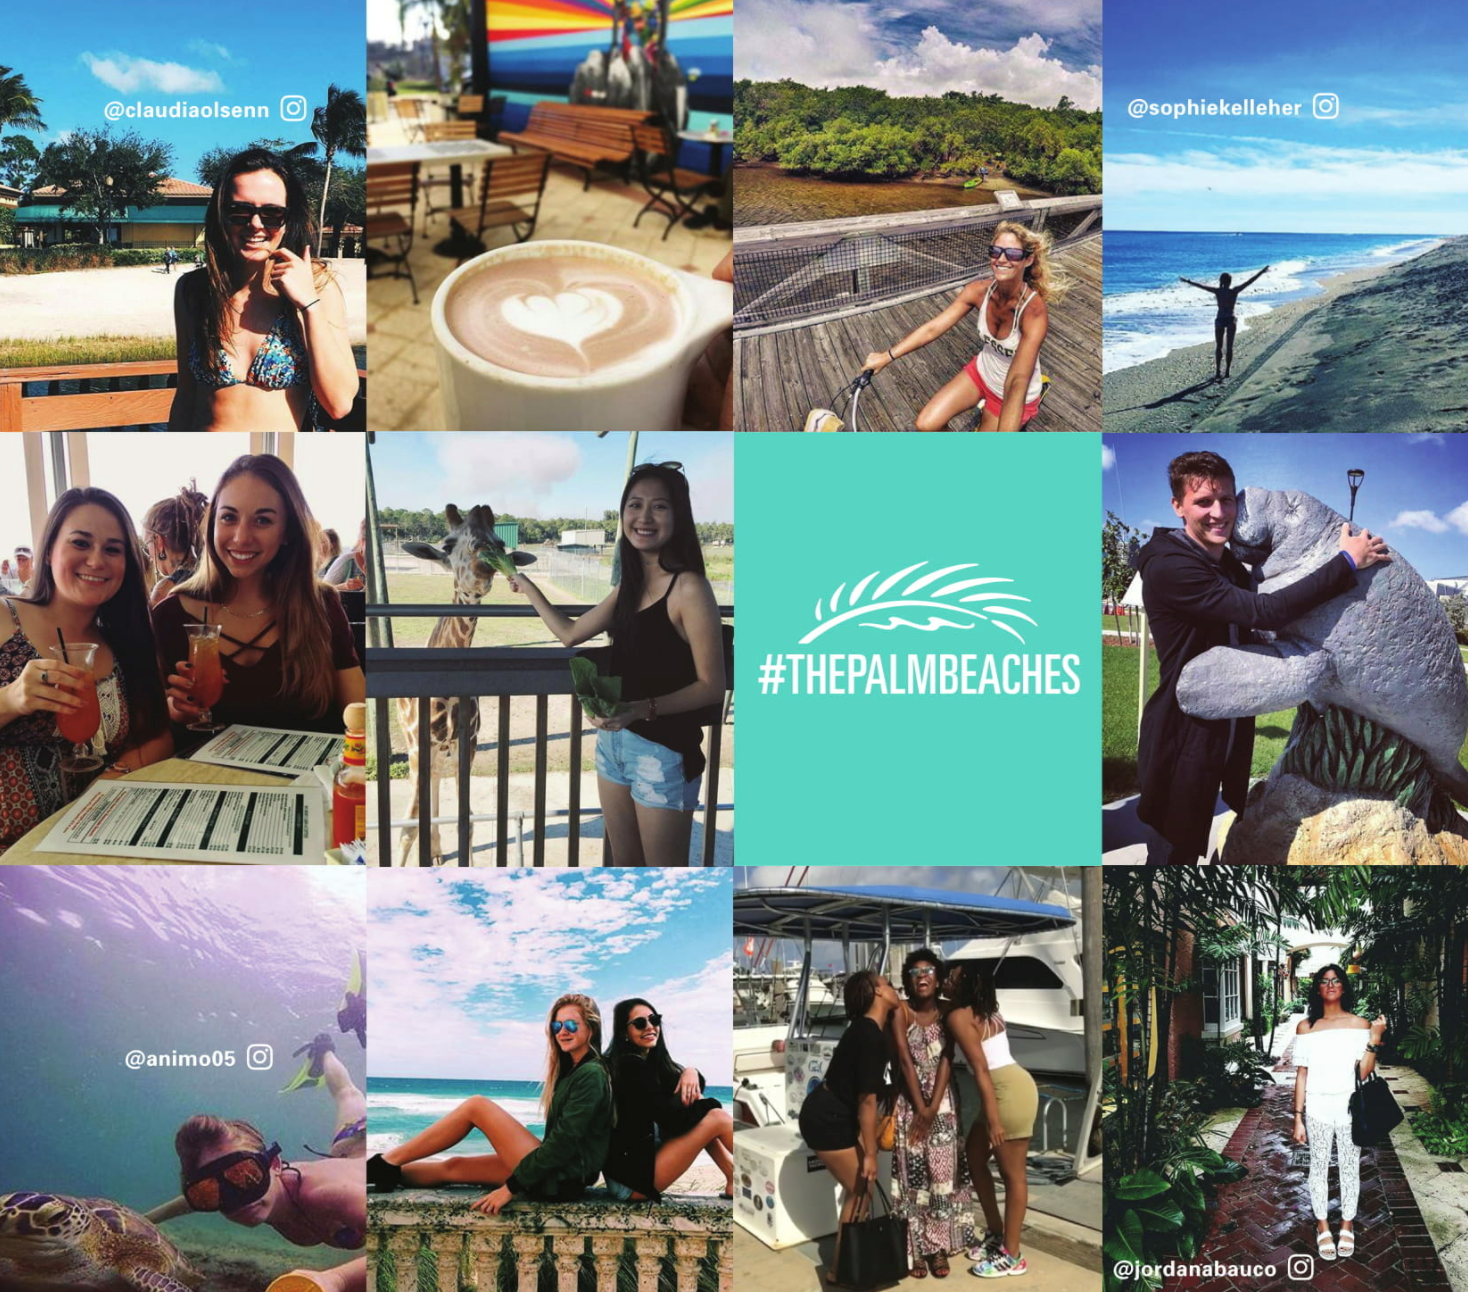 CrowdRiff gathers UGC for travel and tourism brands